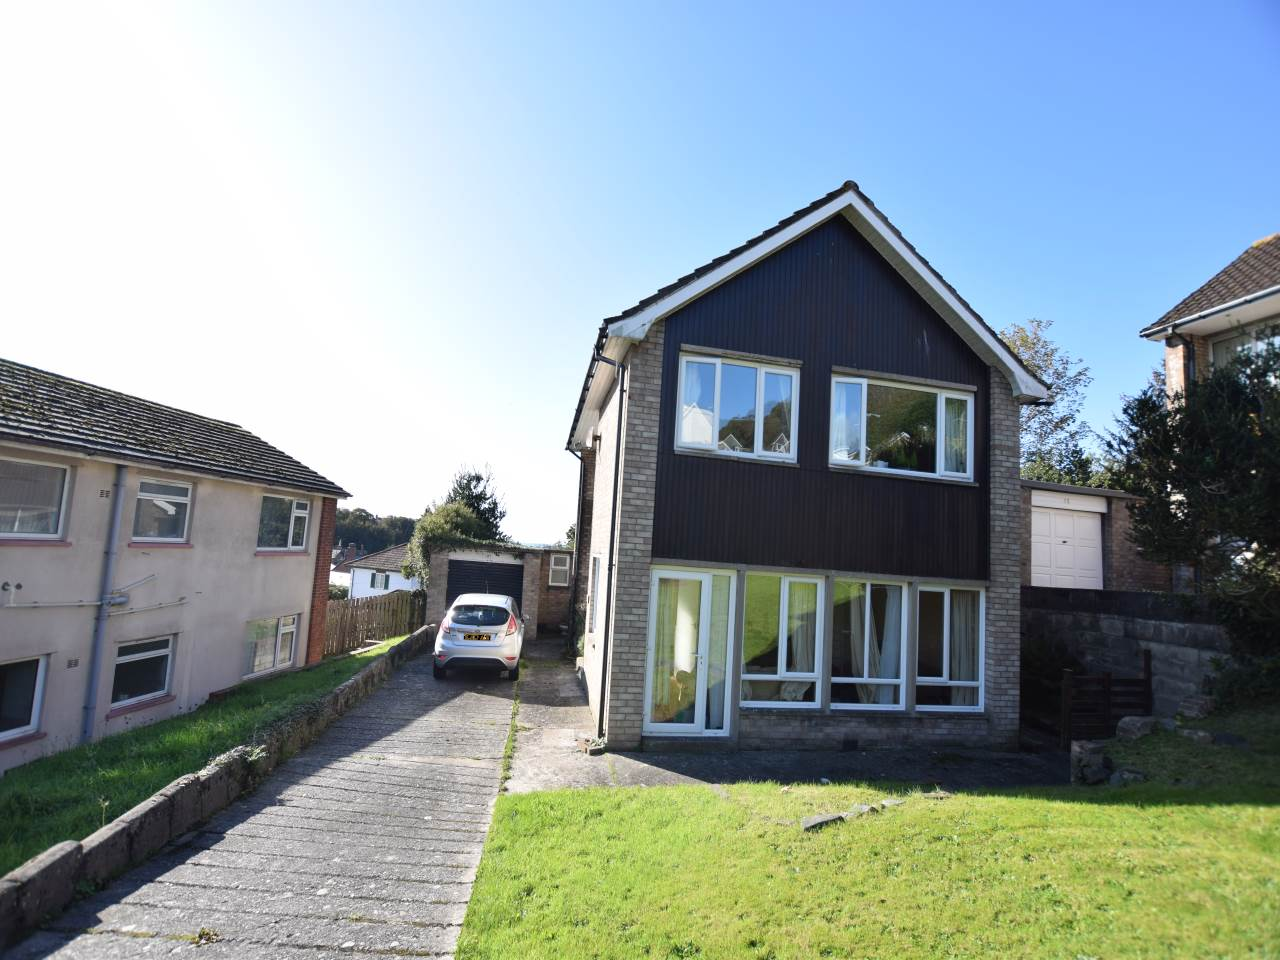 4 bed house to rent in Aberystwyth, Ceredigion - Property Image 1